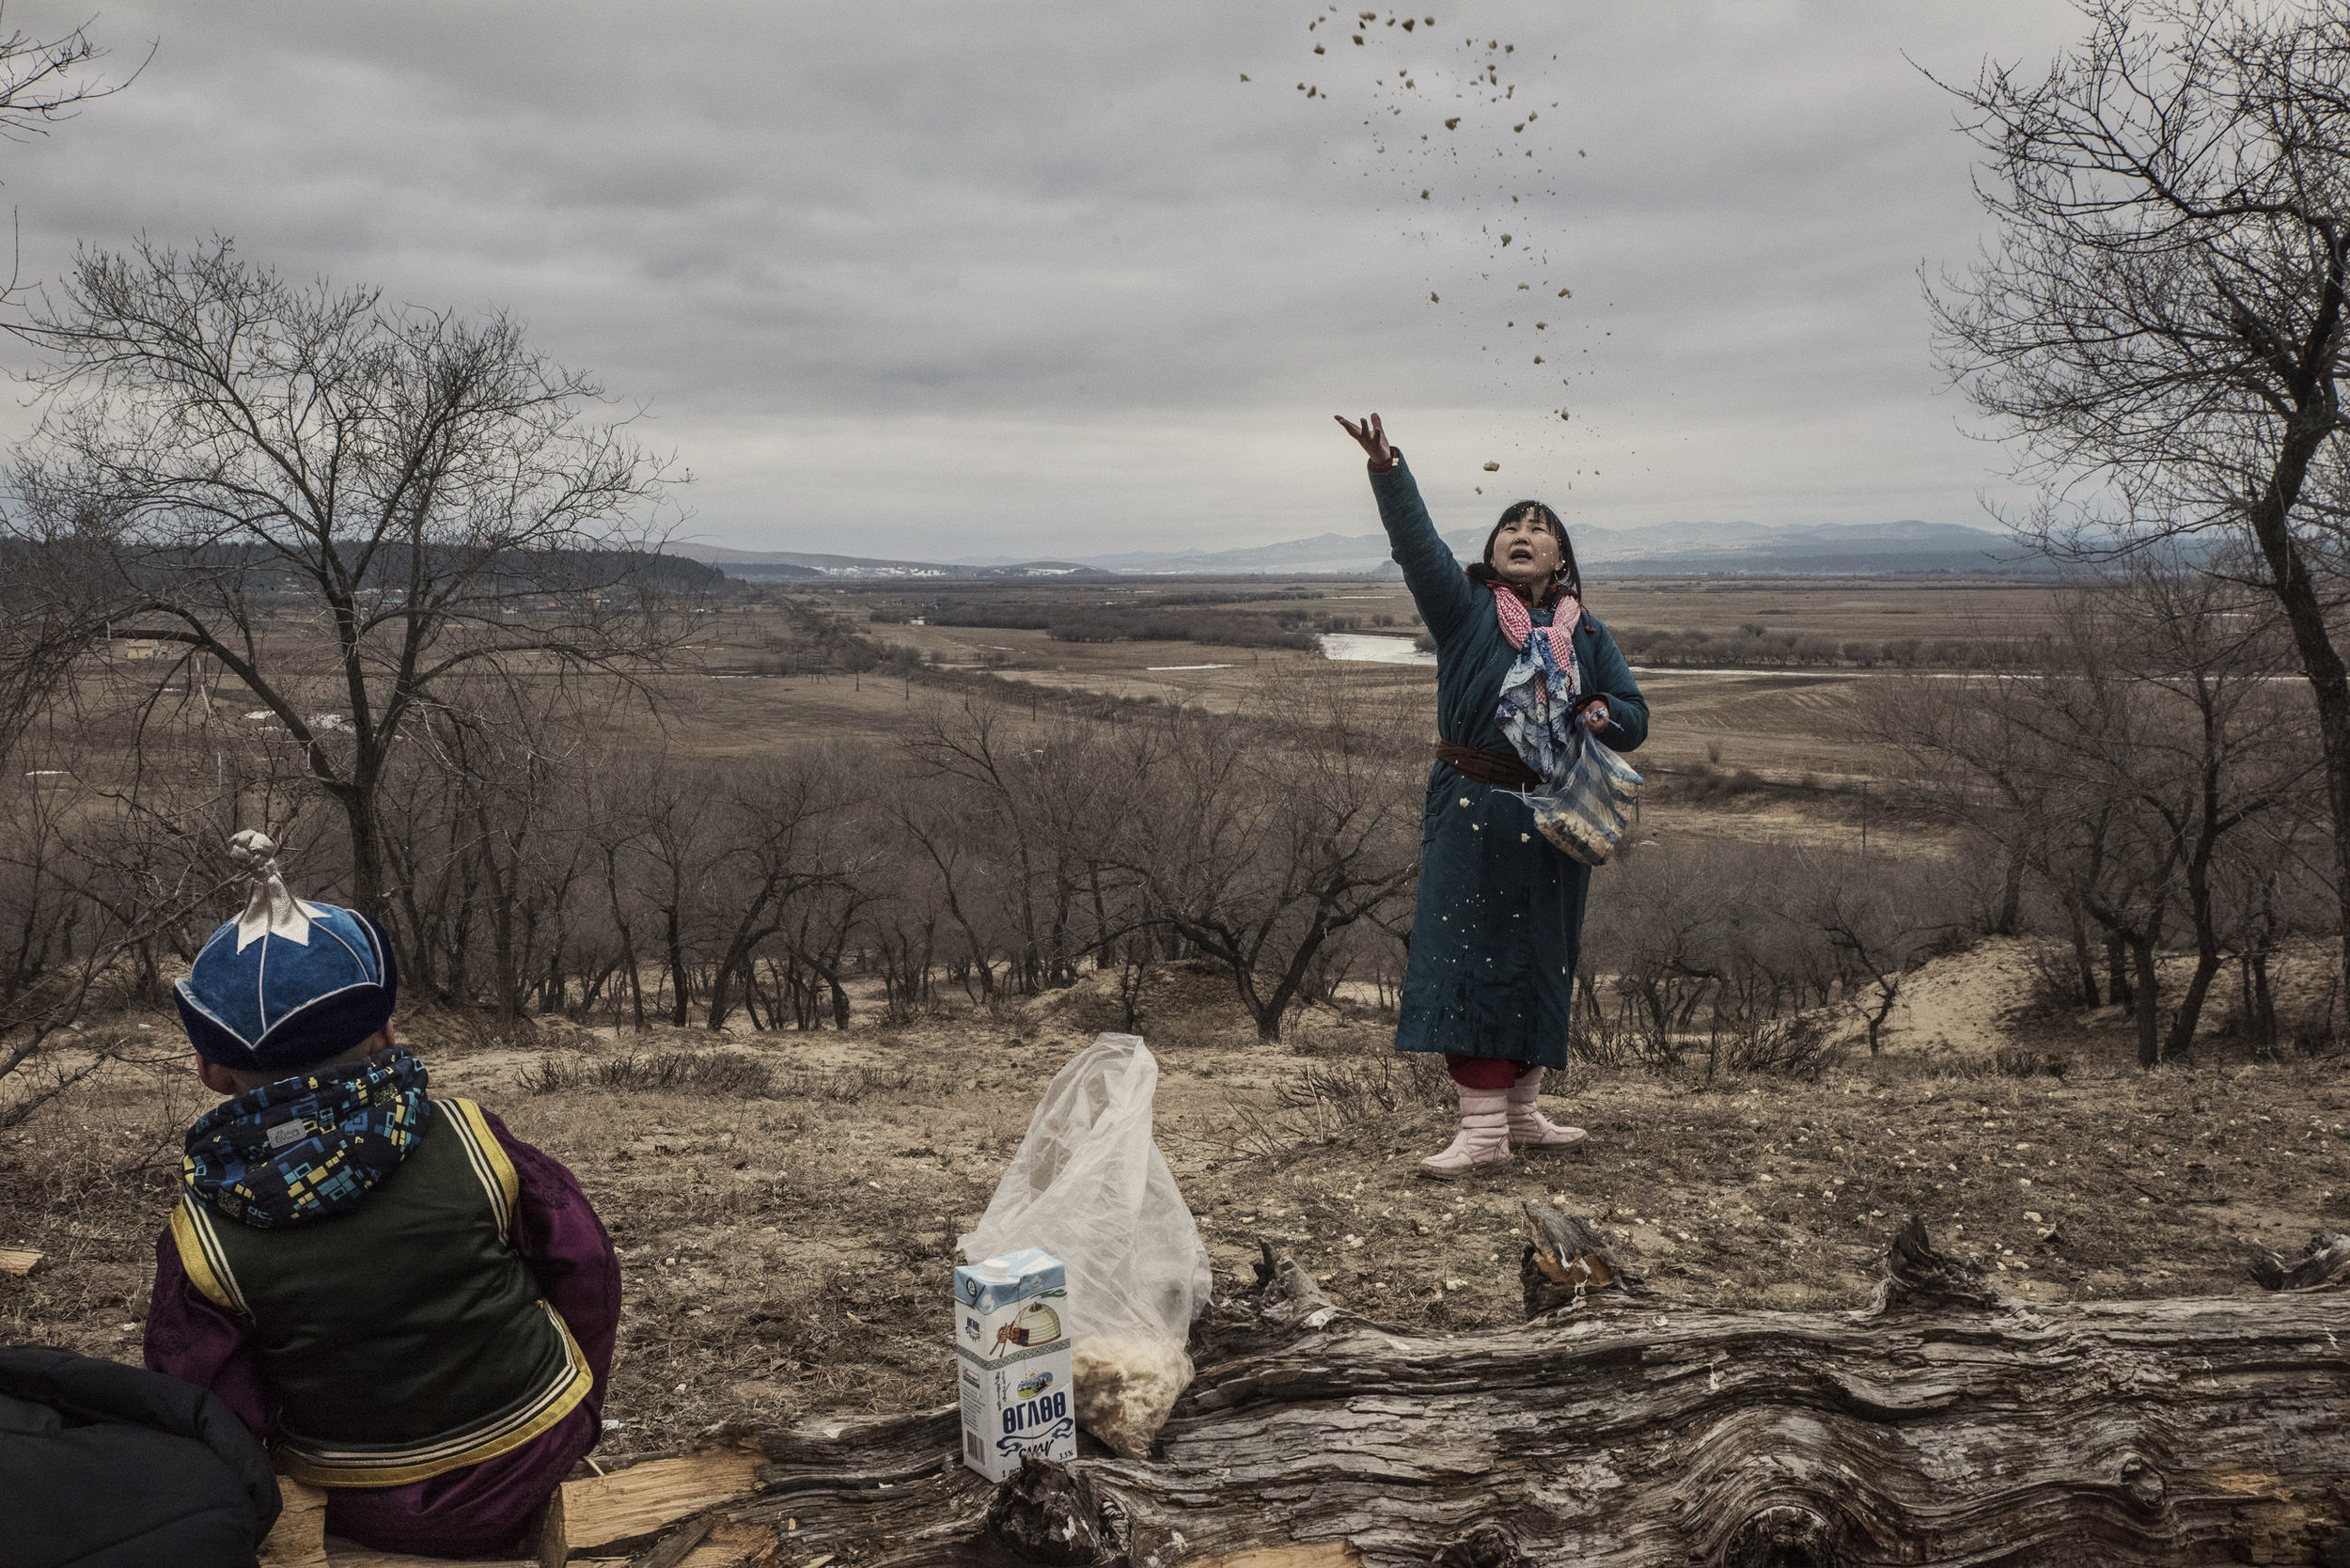 A woman throwing bits of cake to the sky, as an offering to Tenger, the main spirit of shamanic practices.     At the heart, shamanism is a worship of nature and the spirits that rule mountains, rivers and the sky.